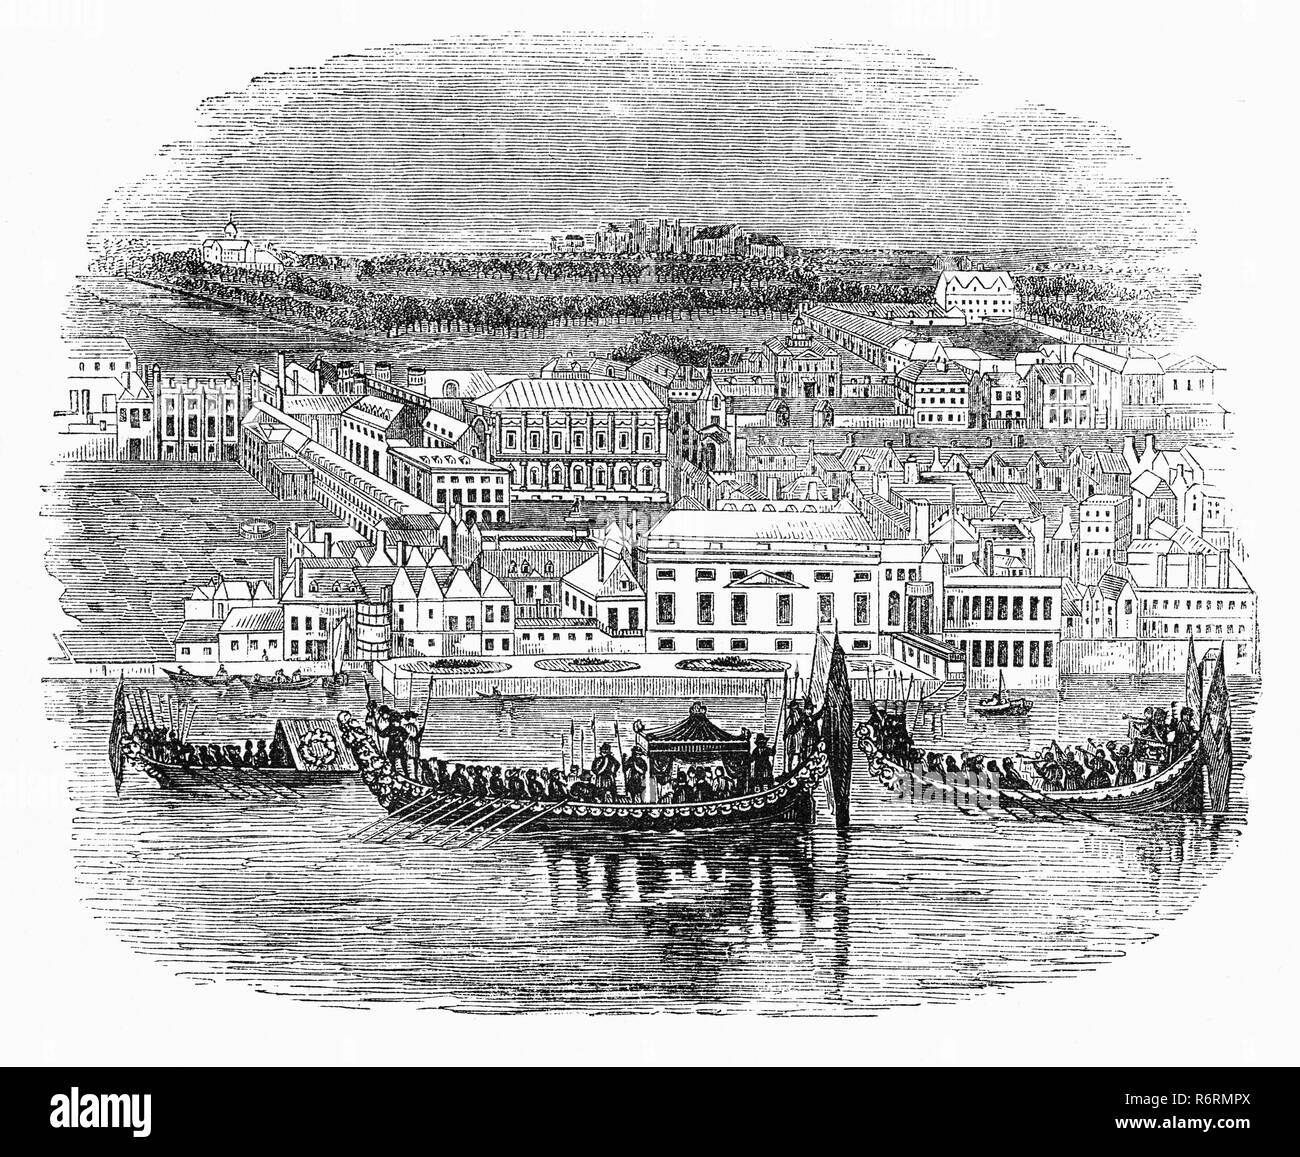 A  Royal Aquatic Procession on the River Thames passing the Palace of Whitehall (or Palace of White Hall) at Westminster, Middlesex, was the main residence of the English monarchs from 1530 until 1698, when most of its structures, except for Inigo Jones's Banqueting House of 1622, were destroyed by fire. The palace gives its name, Whitehall, to the street on which many of the current administrative buildings of the present-day British government are situated, and hence metonymically to the central government itself. - Stock Image